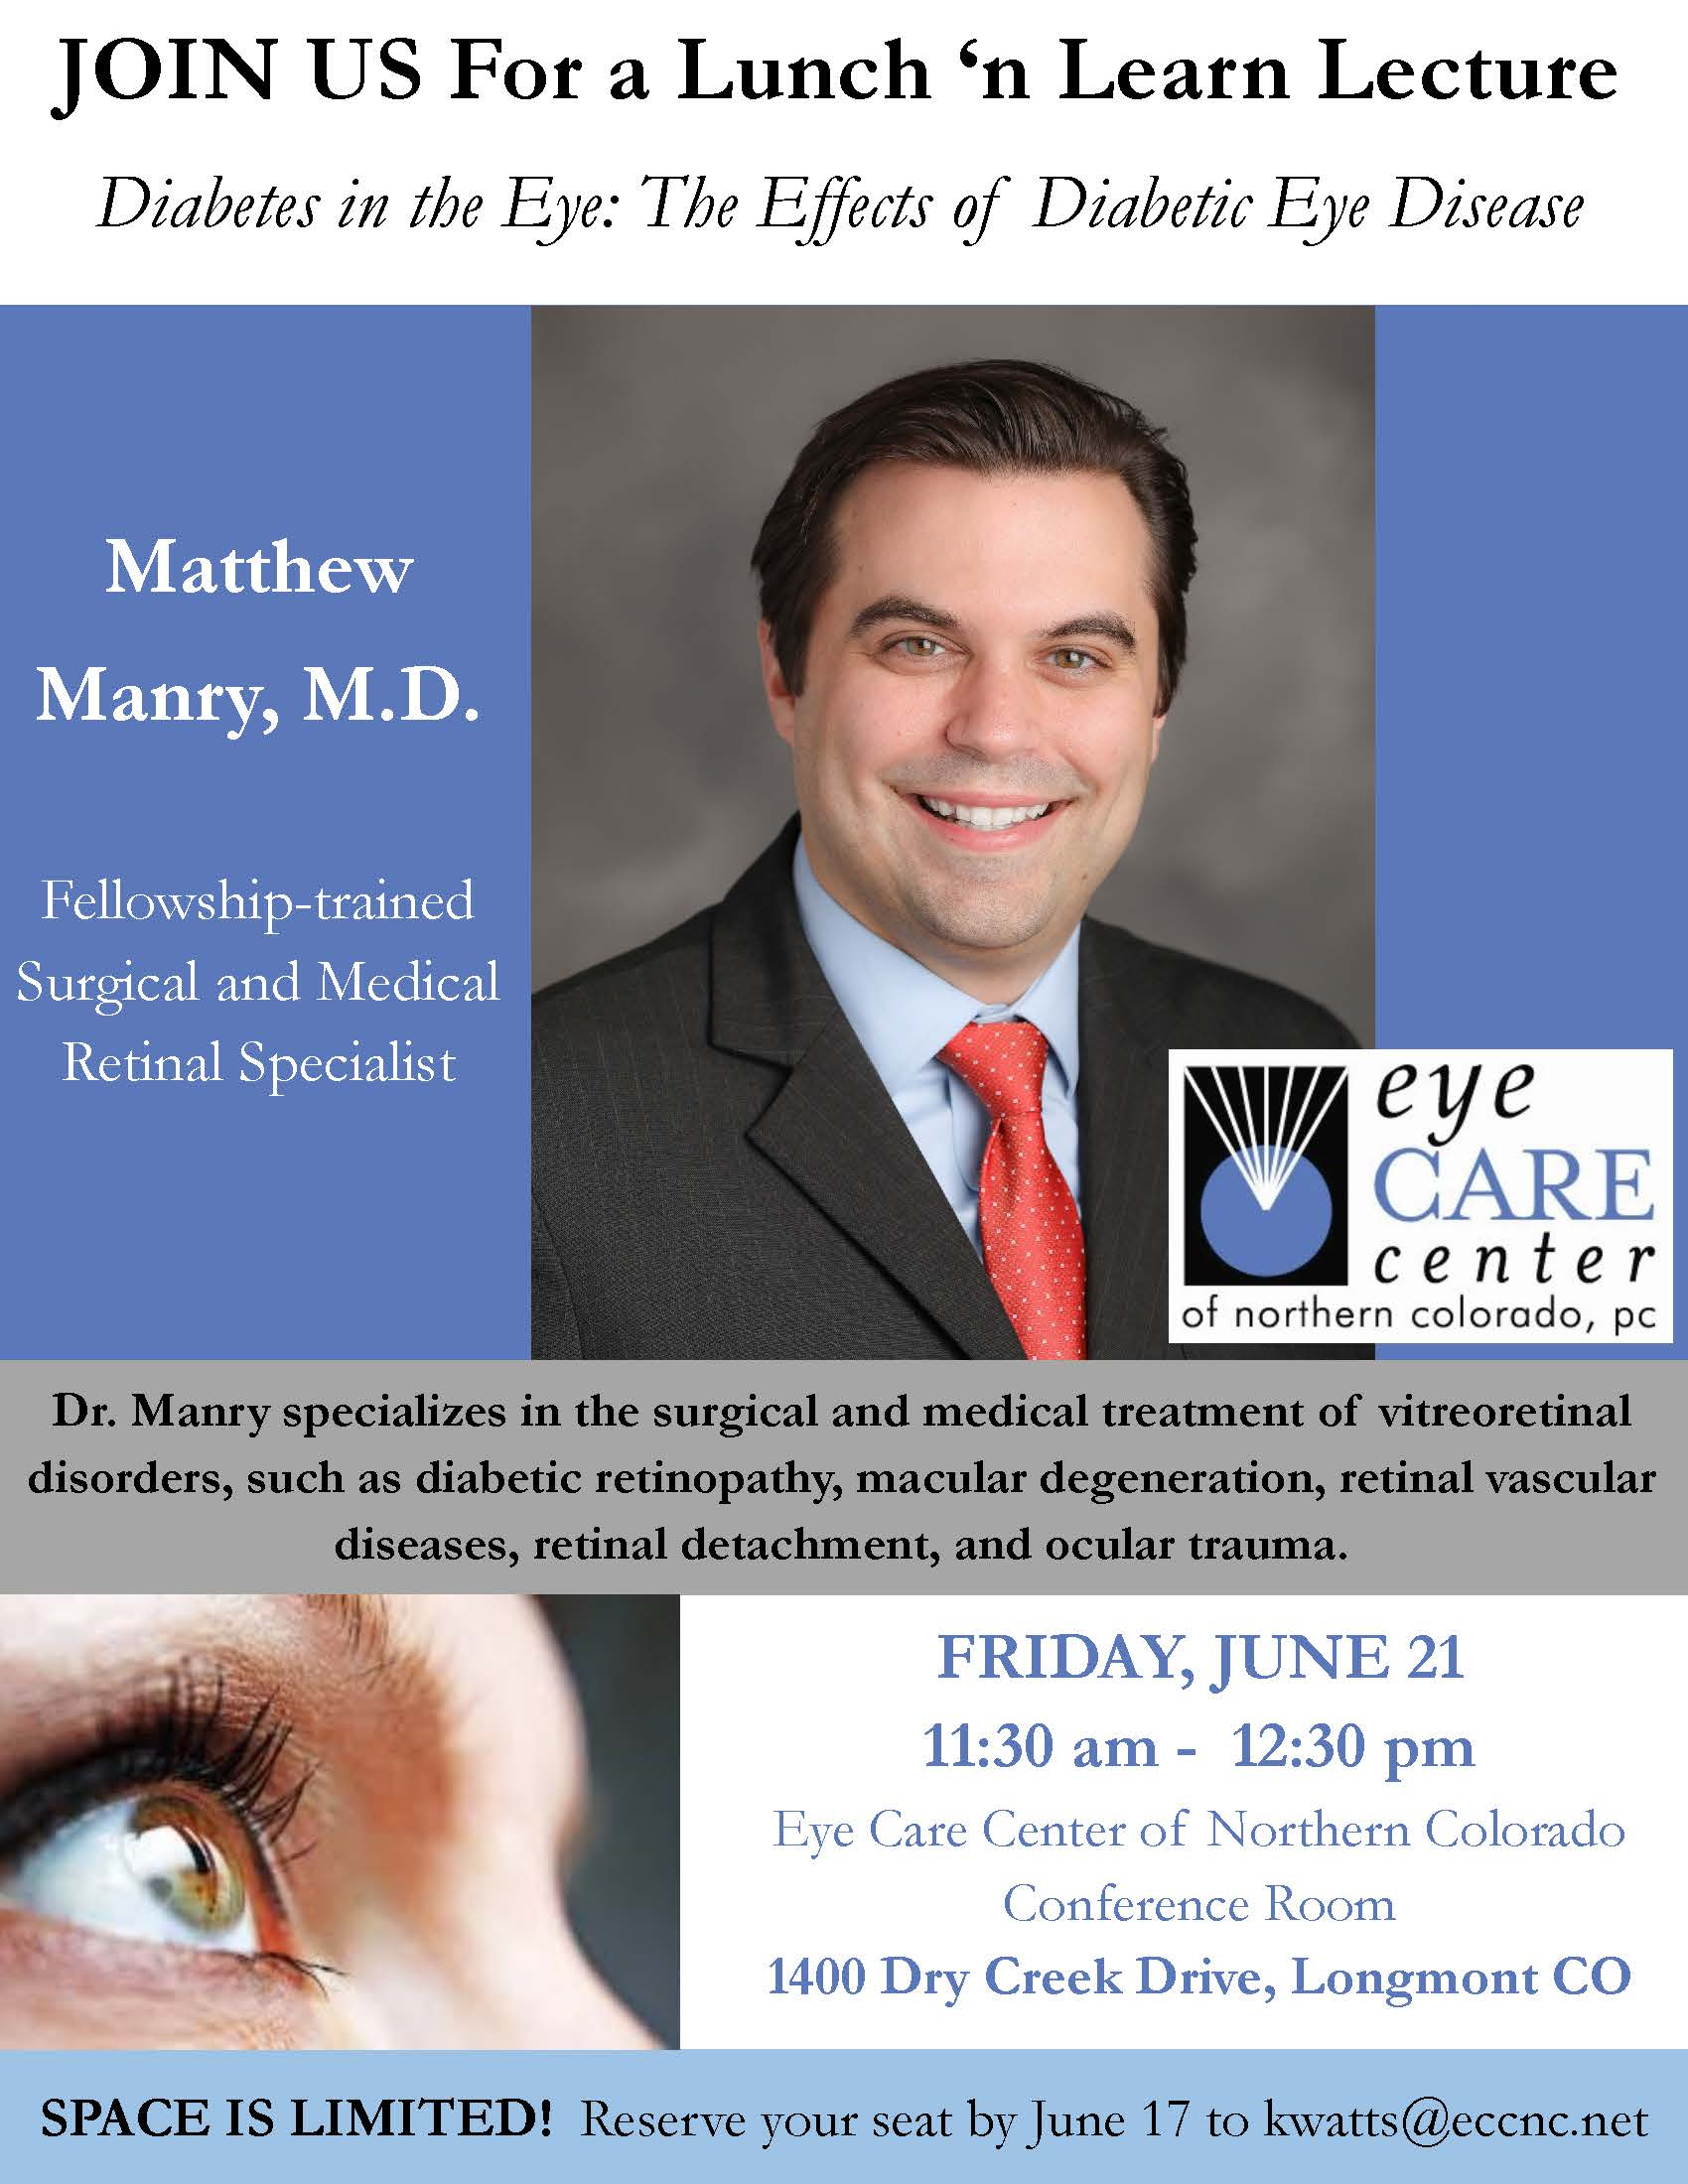 Boulder Eye Care & Surgery Center Doctors June 2019 Diabetes in the Eye - wavelight